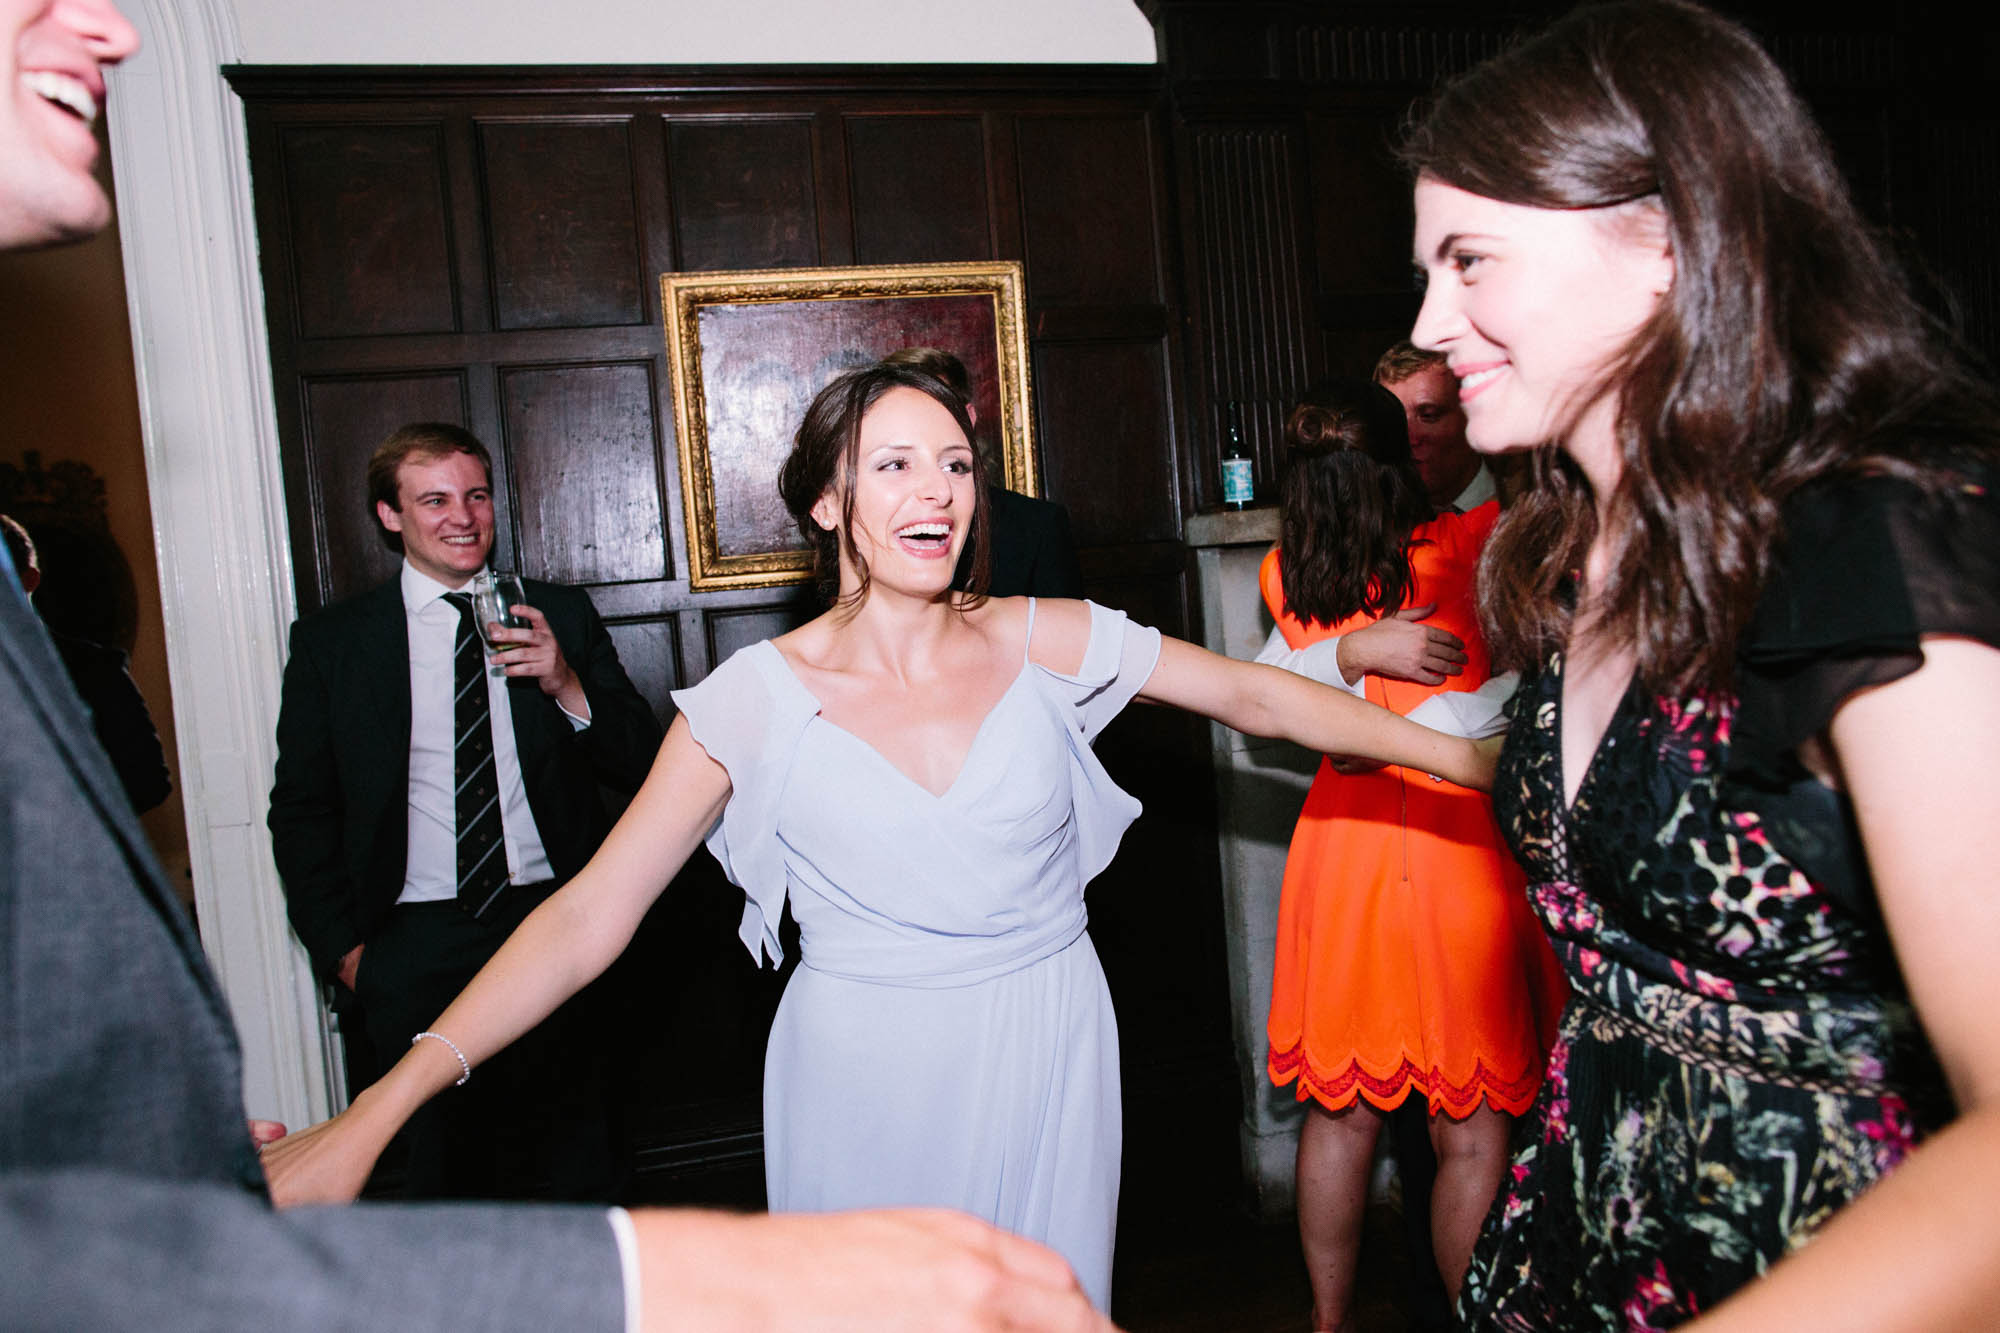 Guests dancing during the evening reception of wedding at Chiddingstone Castle